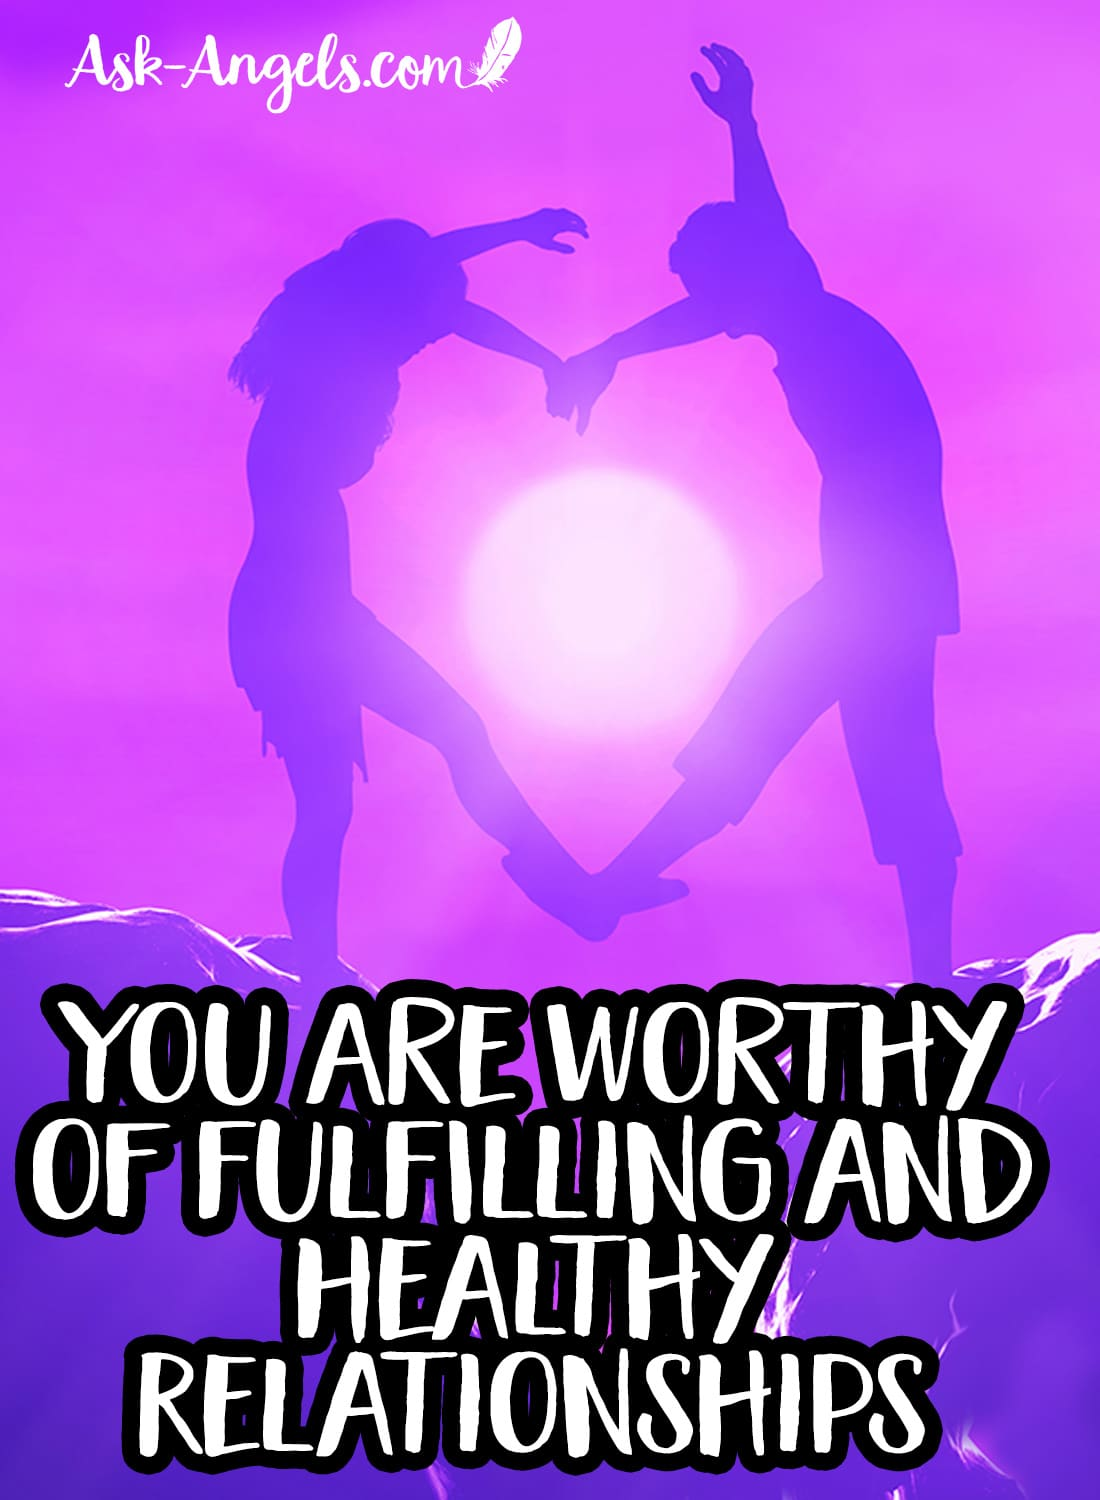 You Are Worthy of Fulfilling and Healthy Relationships